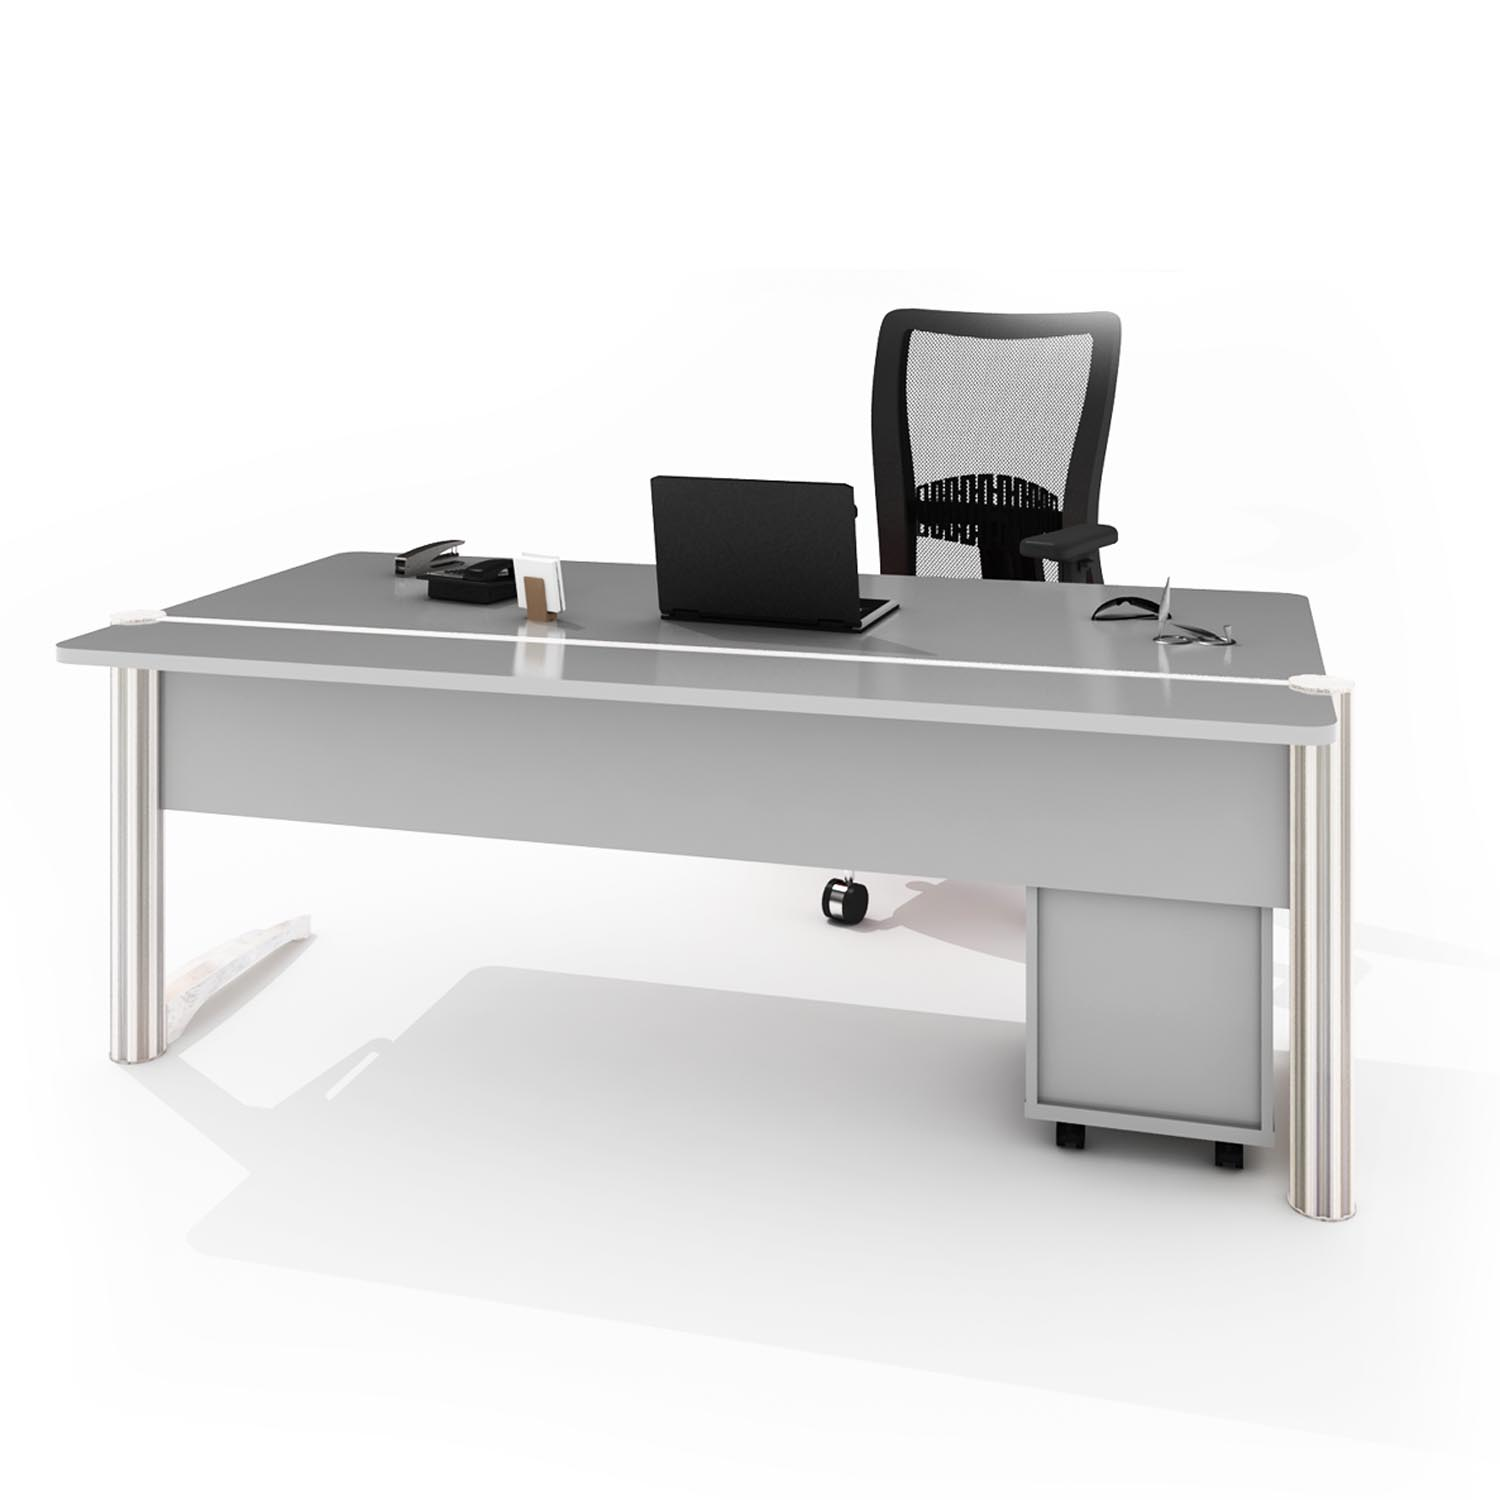 Triform Desks · Work Desks